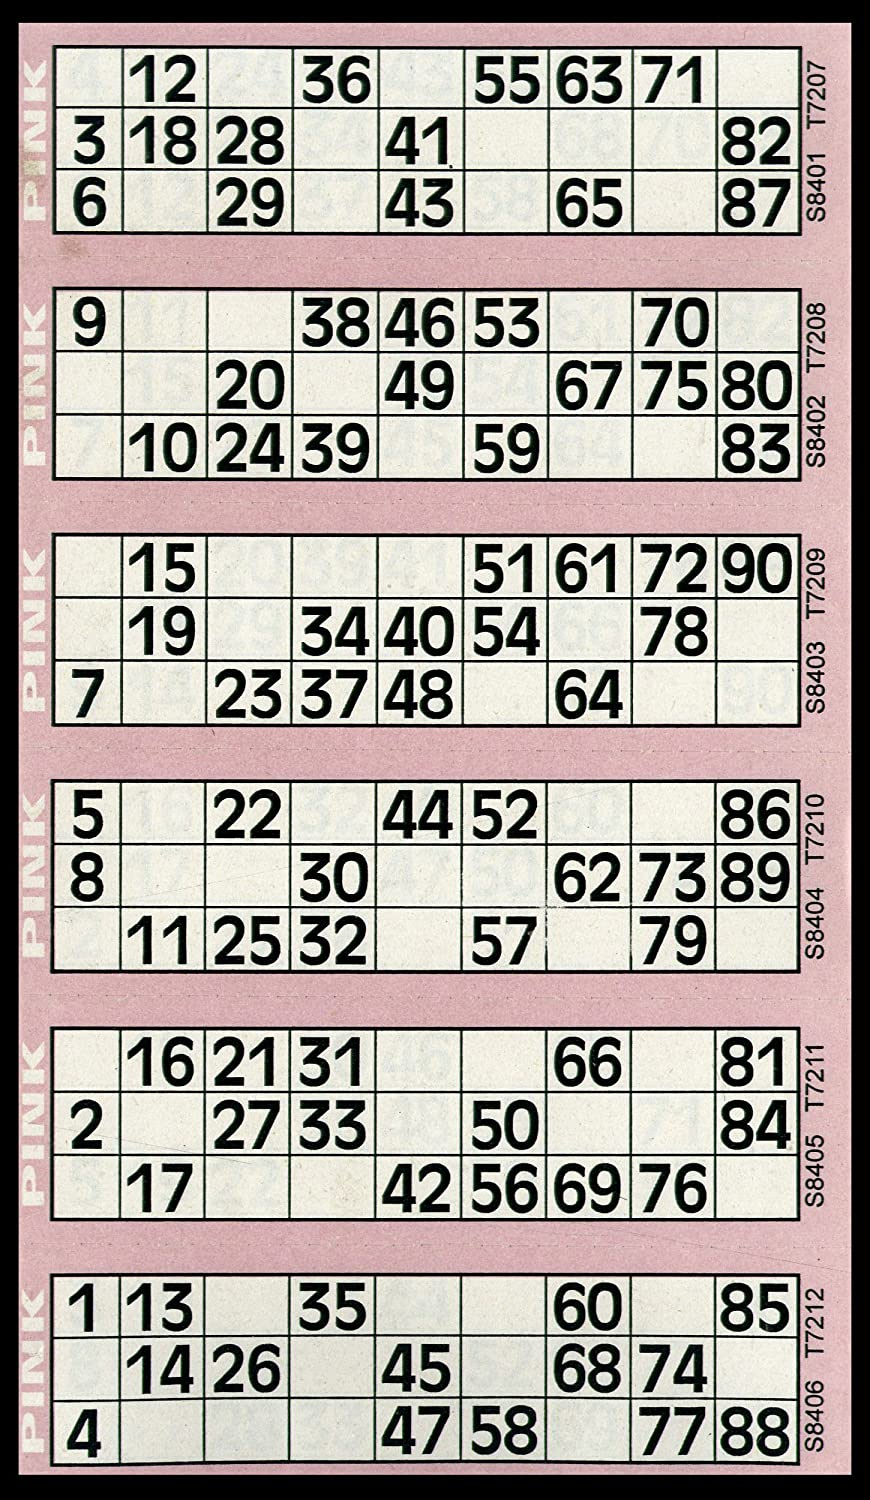 Pad of Pink 6 to View Flyers 600 Bingo Tickets